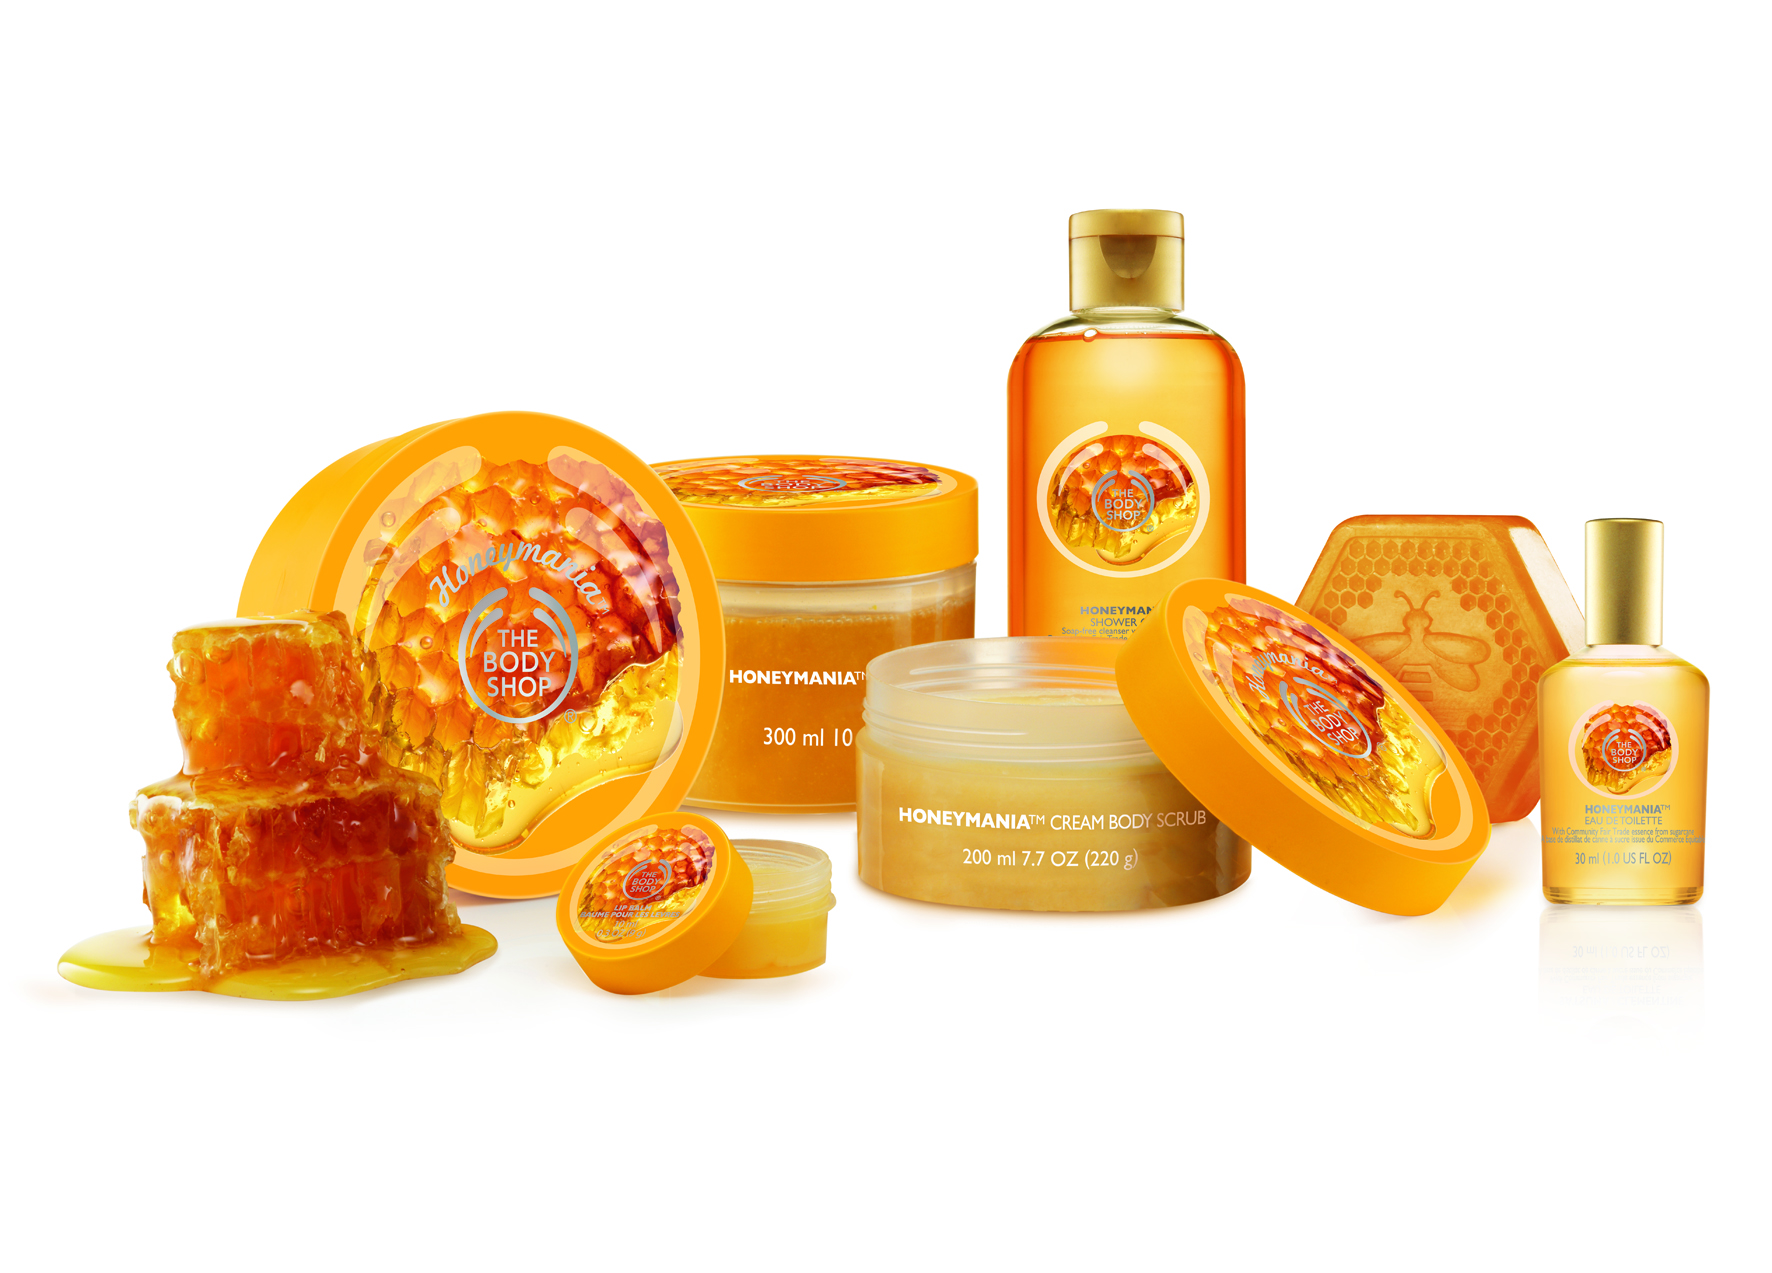 The Body Shop Heads To The Hives For Honeymania Line